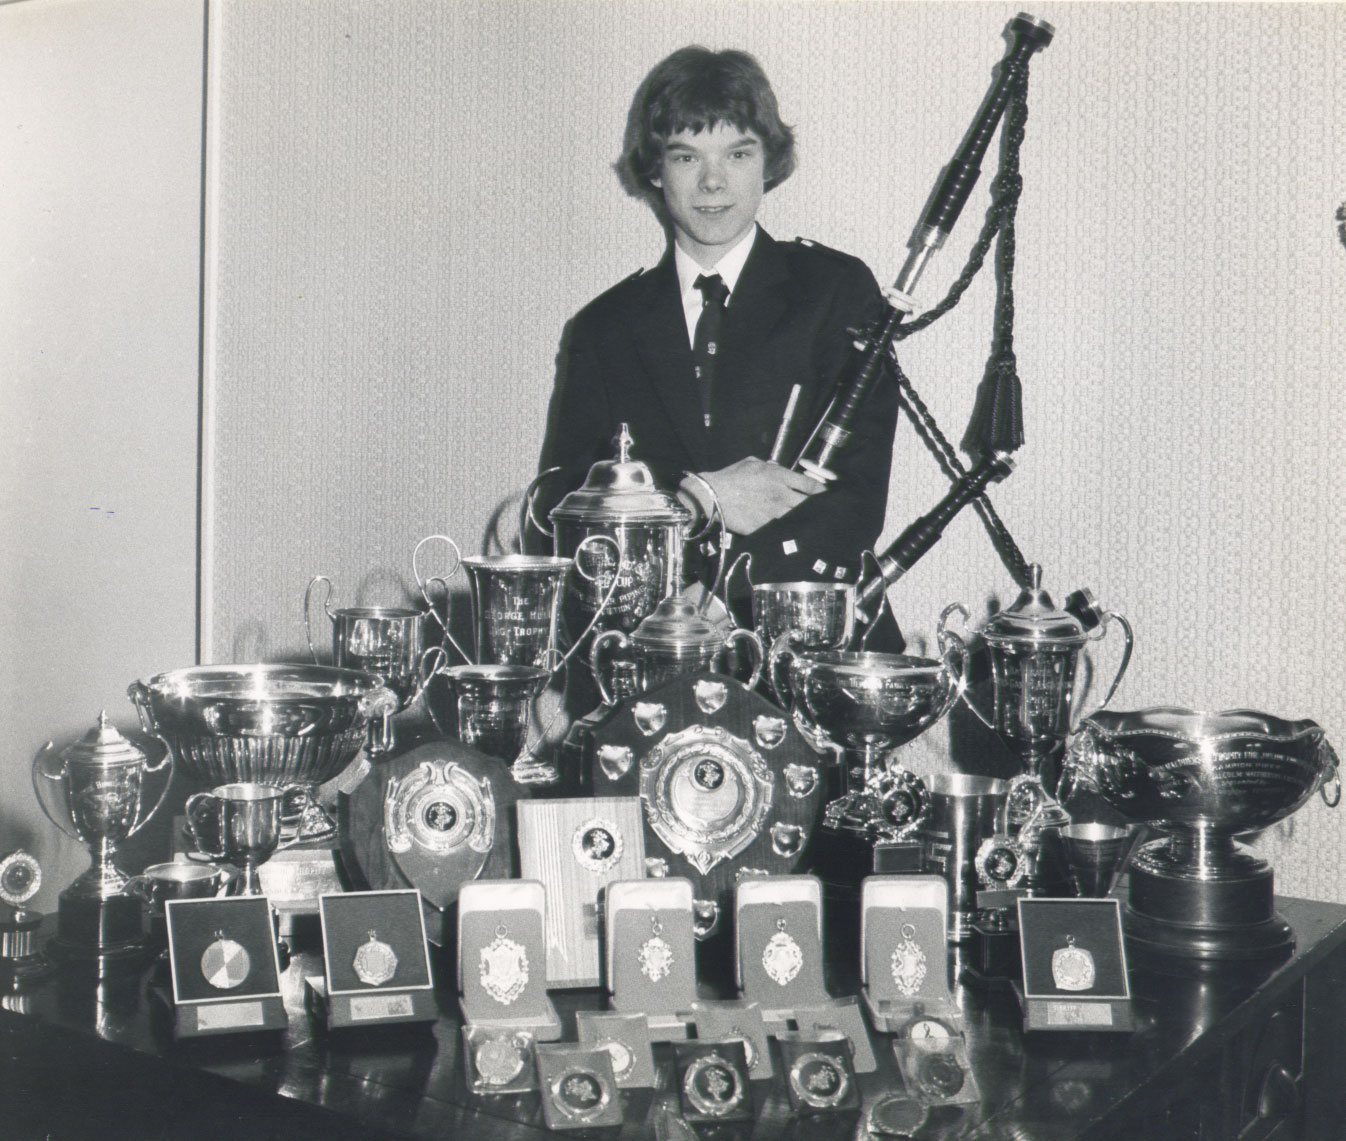 Gordon and his solo trophies in 1975